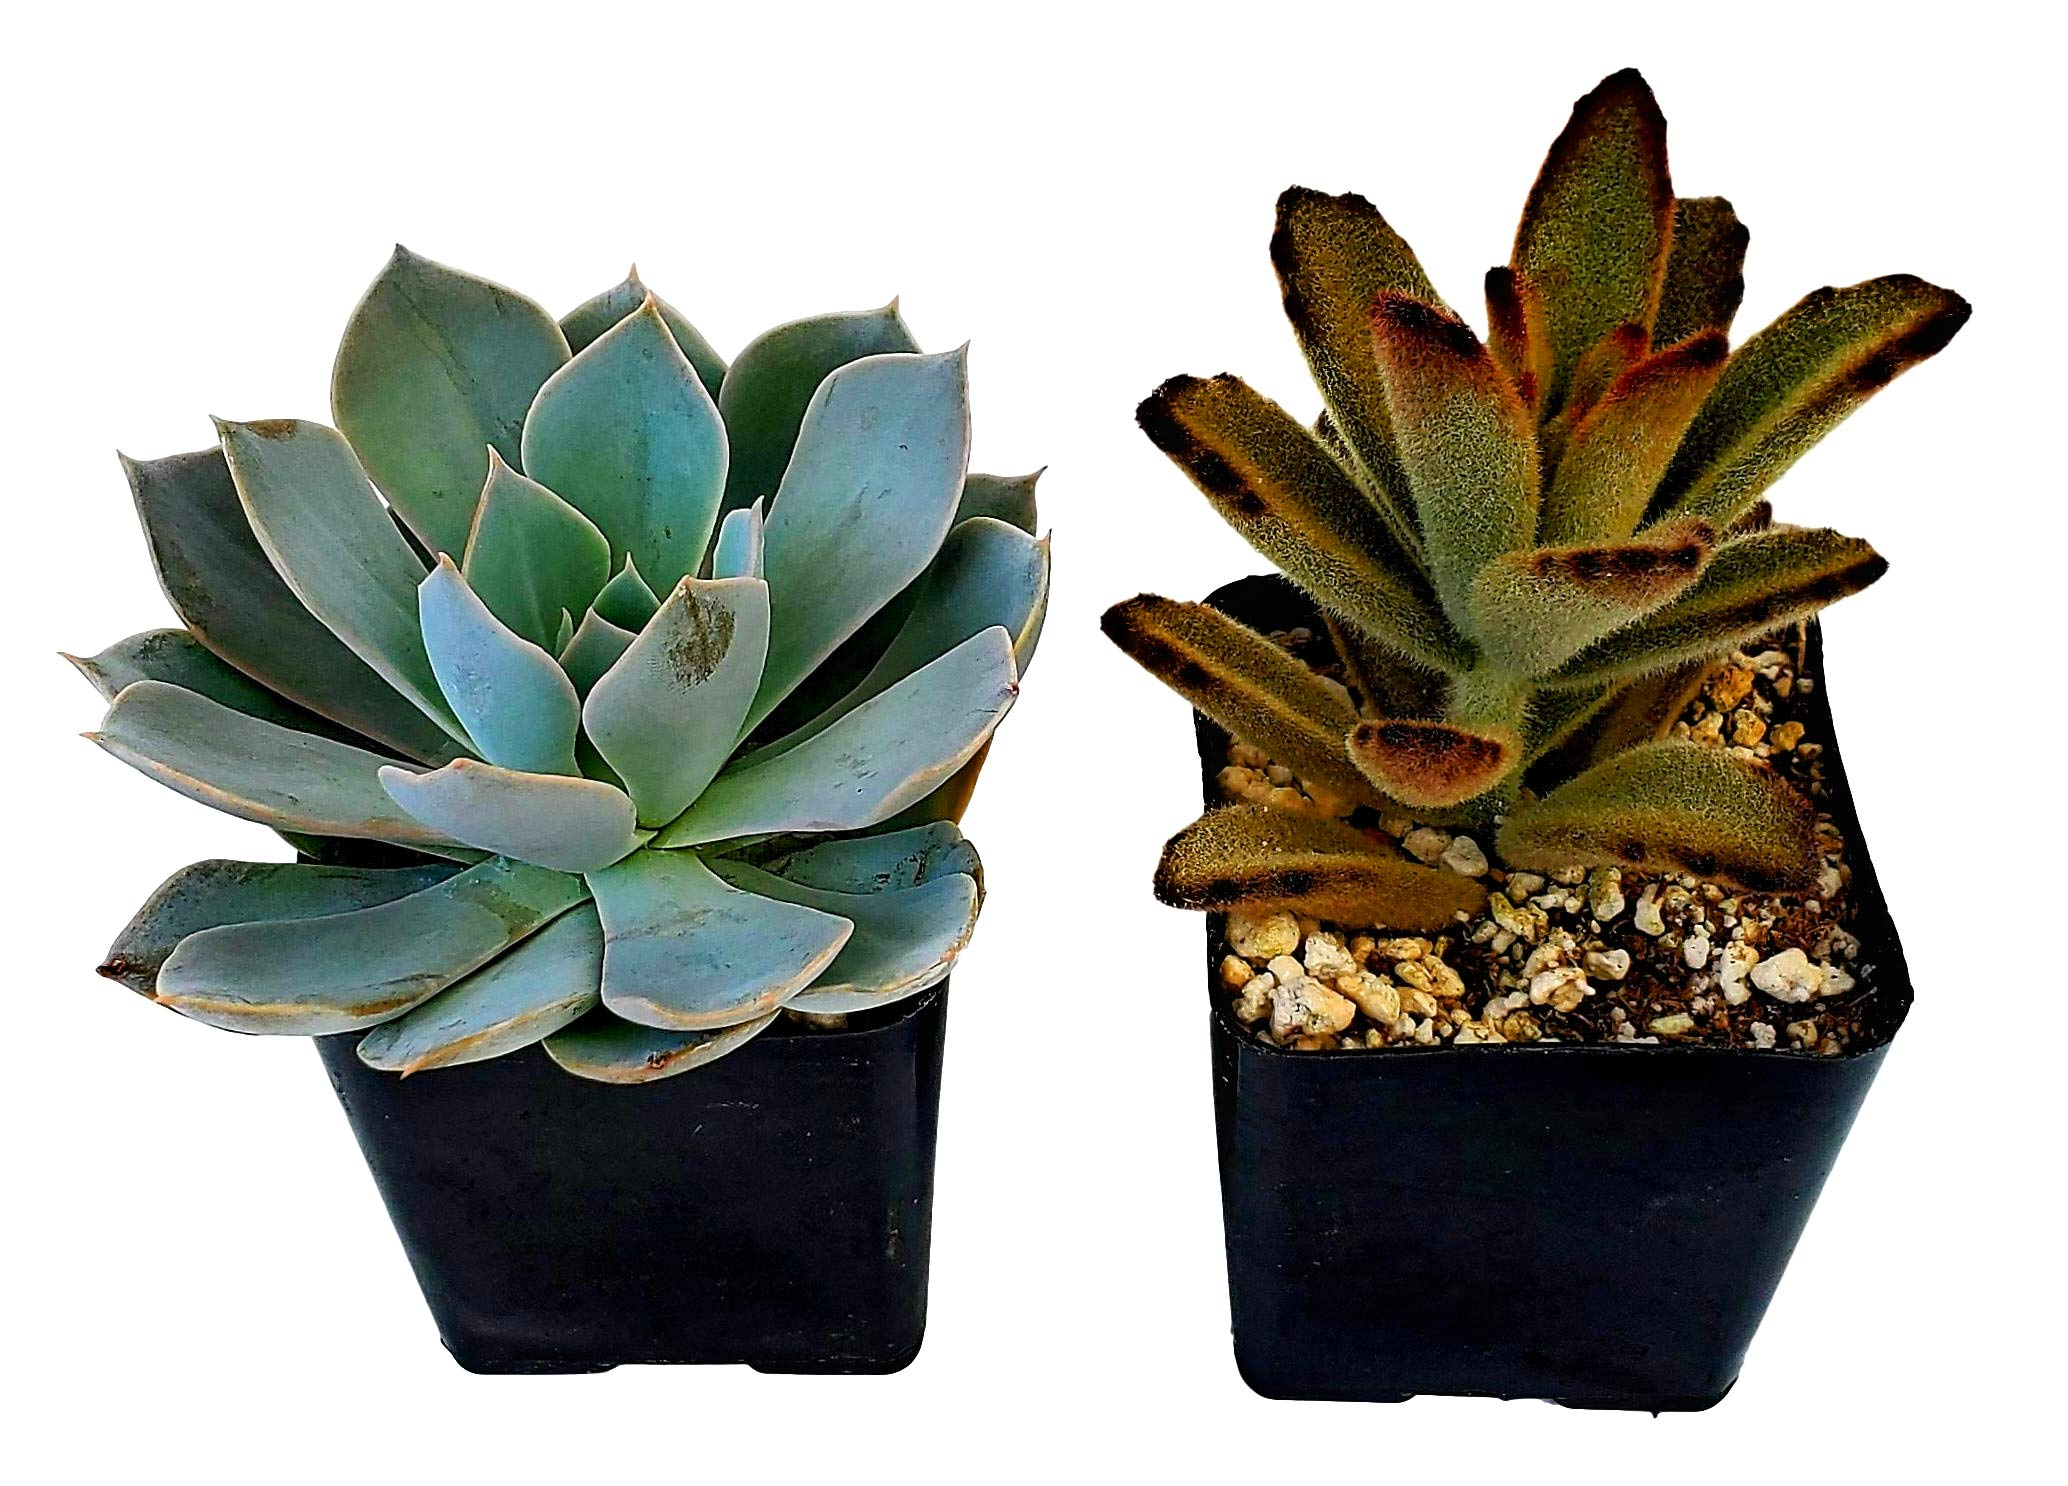 FATPLANTS Succulent Plants in Gift Box | Rooted in 2 inch Planter Pots with Soil | Living Indoor or Outdoor Plants | Home Decor, Gifts, Shower & Wedding Decorations (2) by Fat Plants San Diego